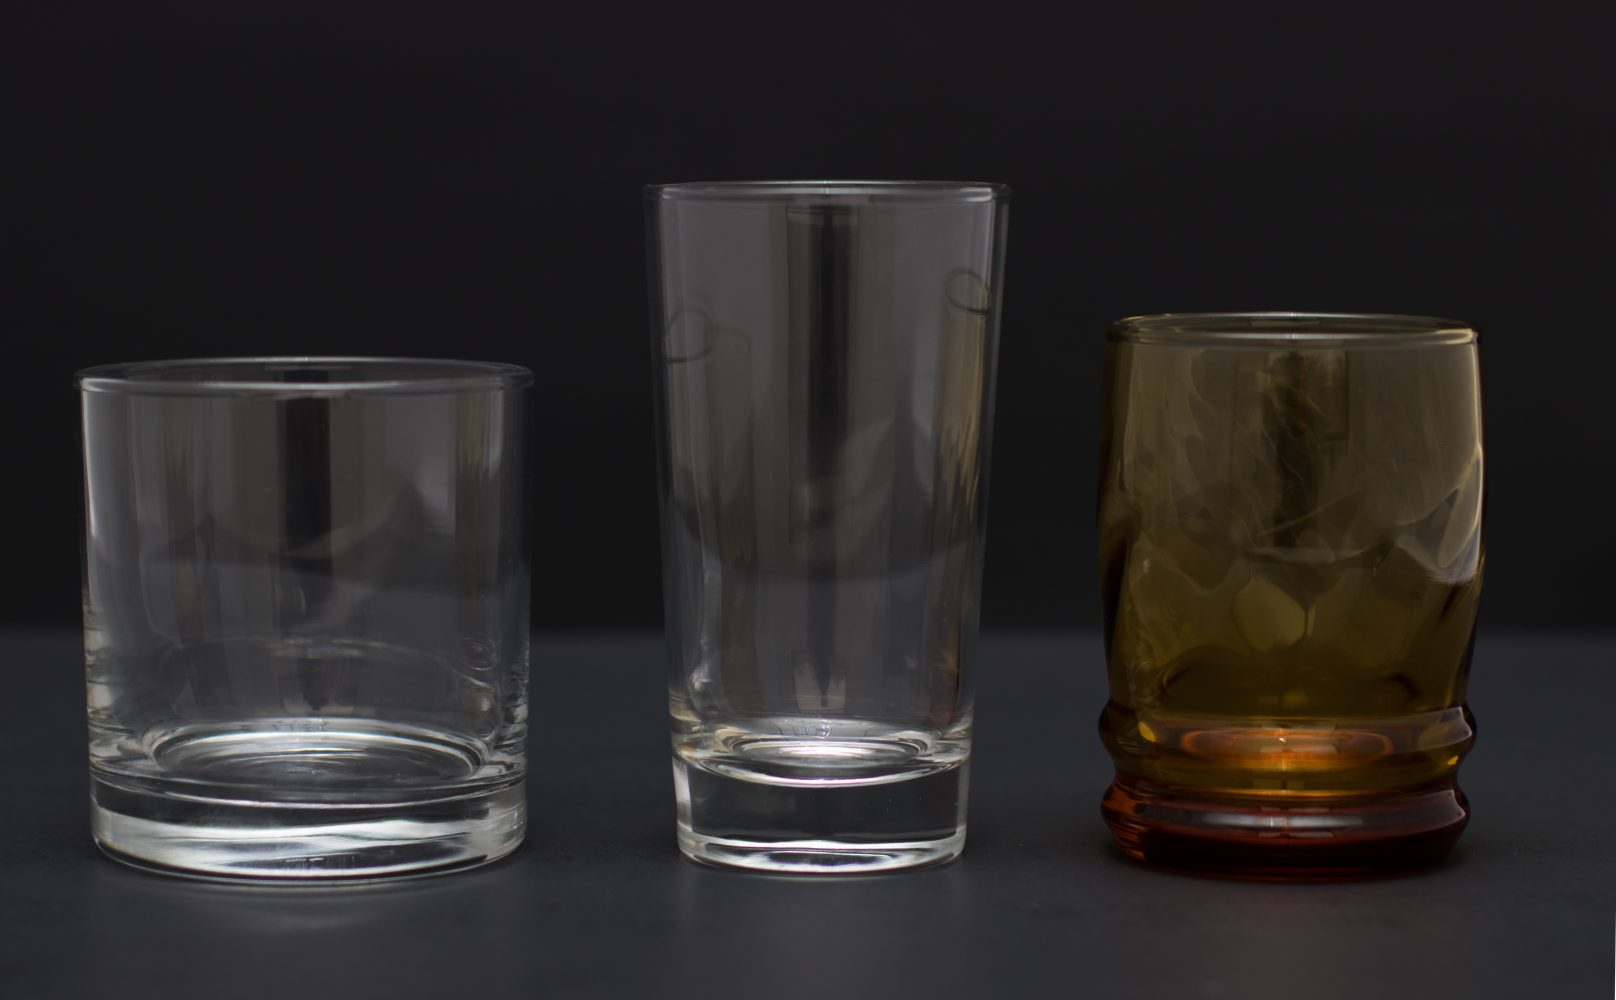 Liquor & Whiskey Collection Image